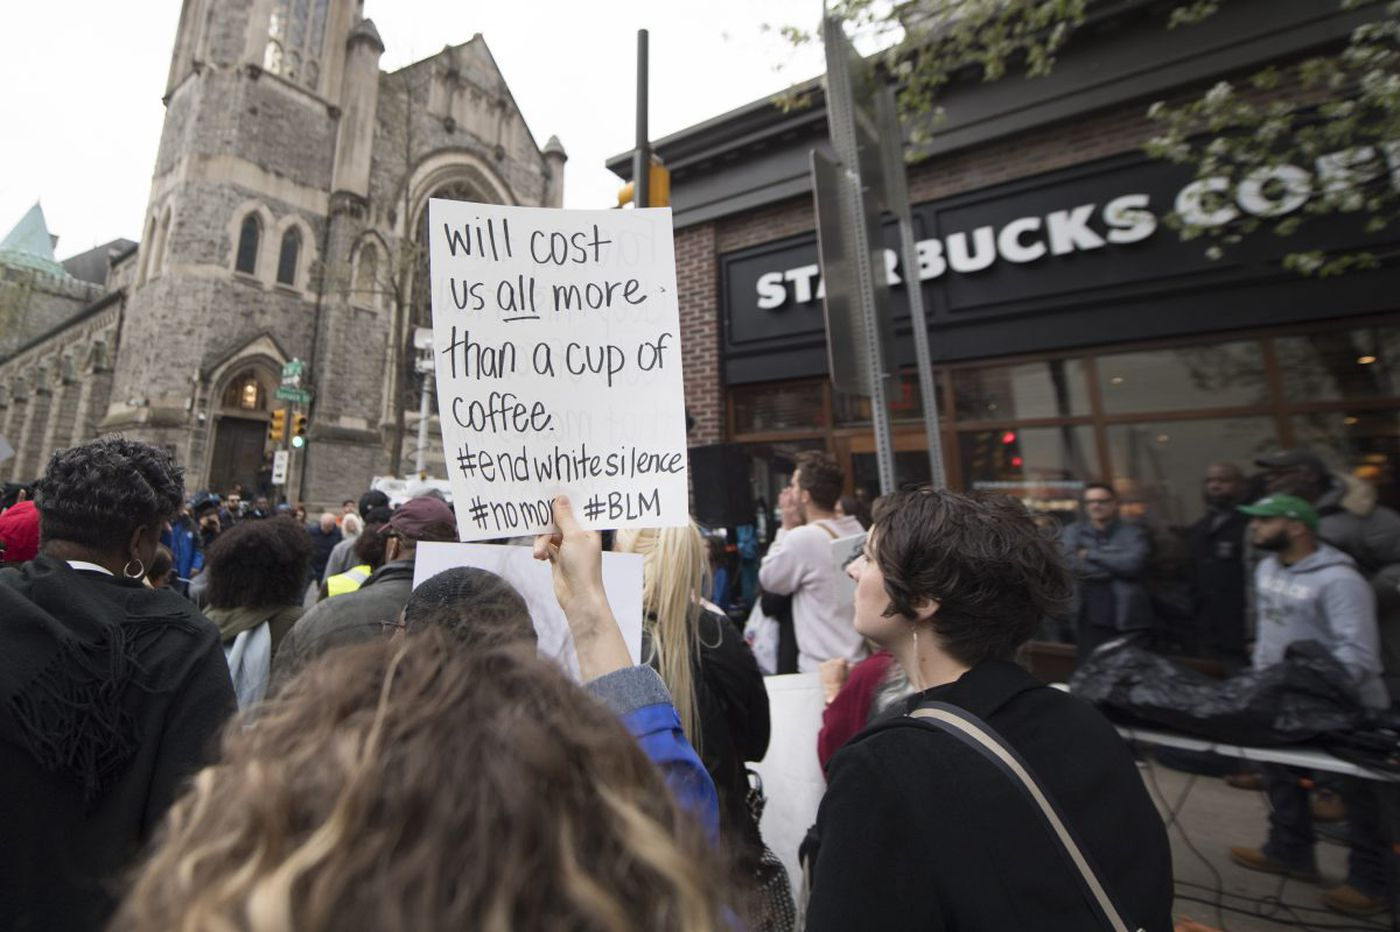 Starbucks bathrooms will be open to everyone following arrest of two black men in Philadelphia